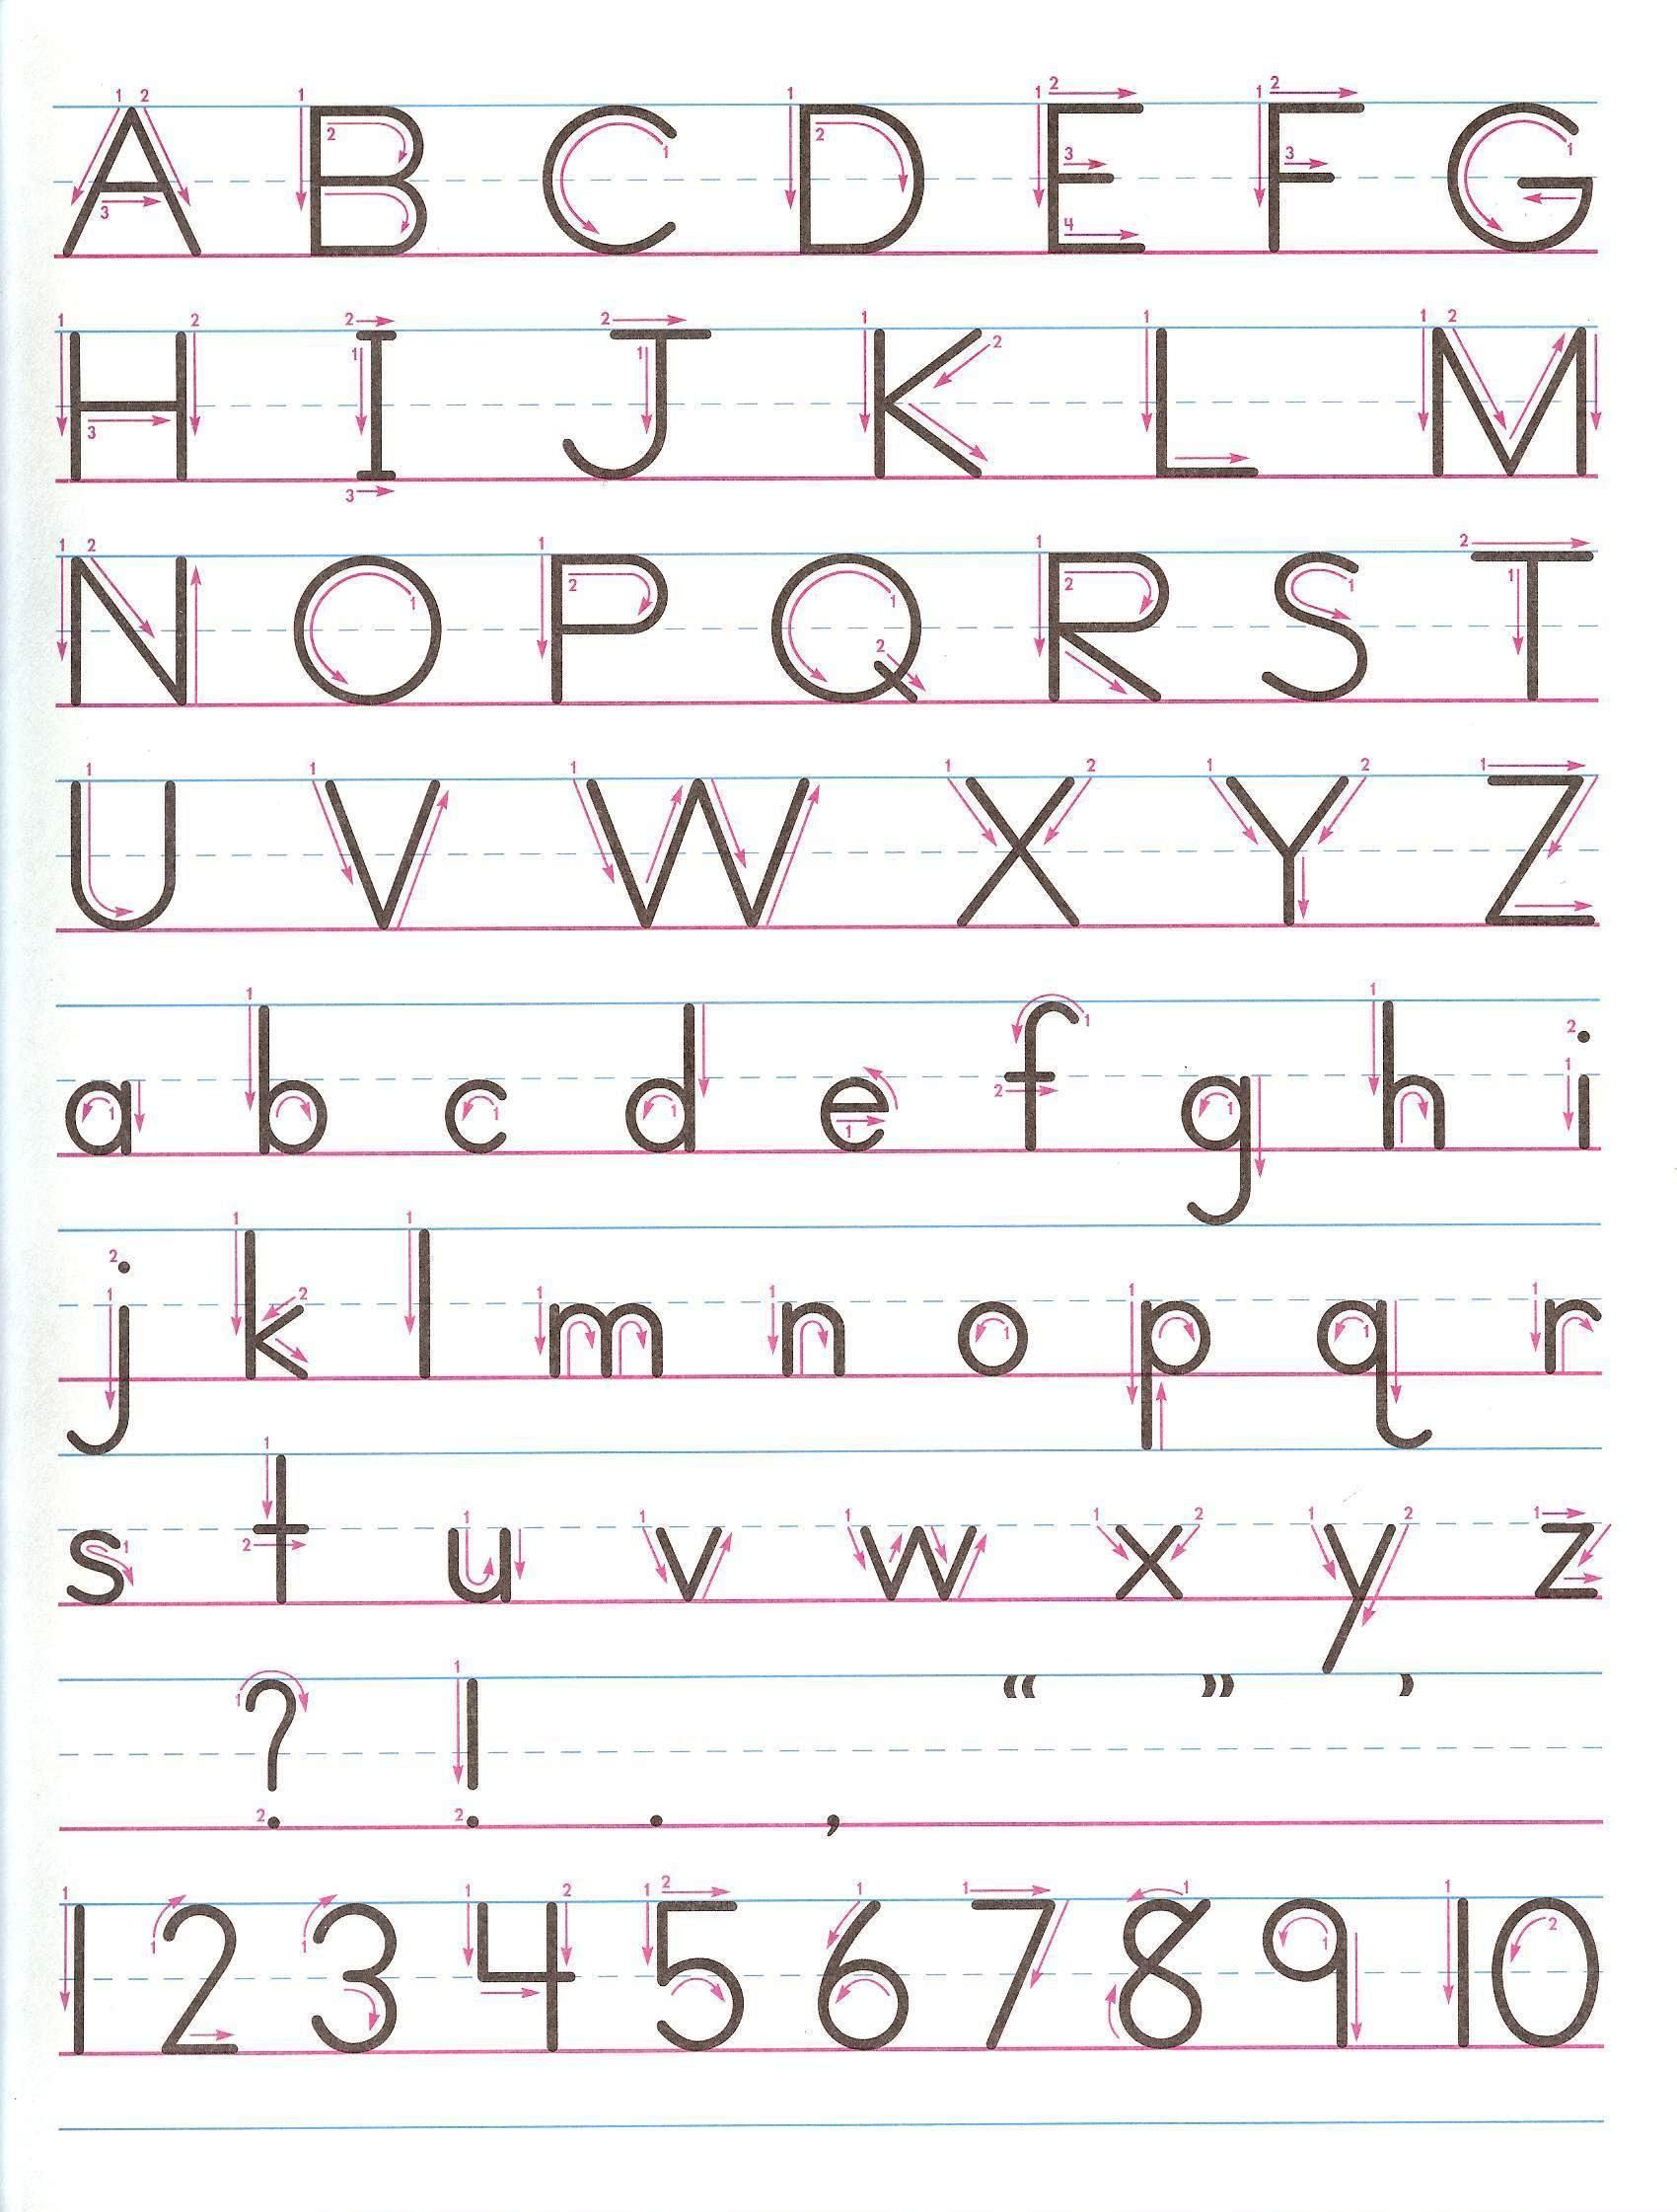 Letter Formation Alphabet Handwriting Sheet Uppercase And Lowercase Kids Handwriting Practice Handwriting Worksheets Zaner Bloser Handwriting [ 2242 x 1700 Pixel ]